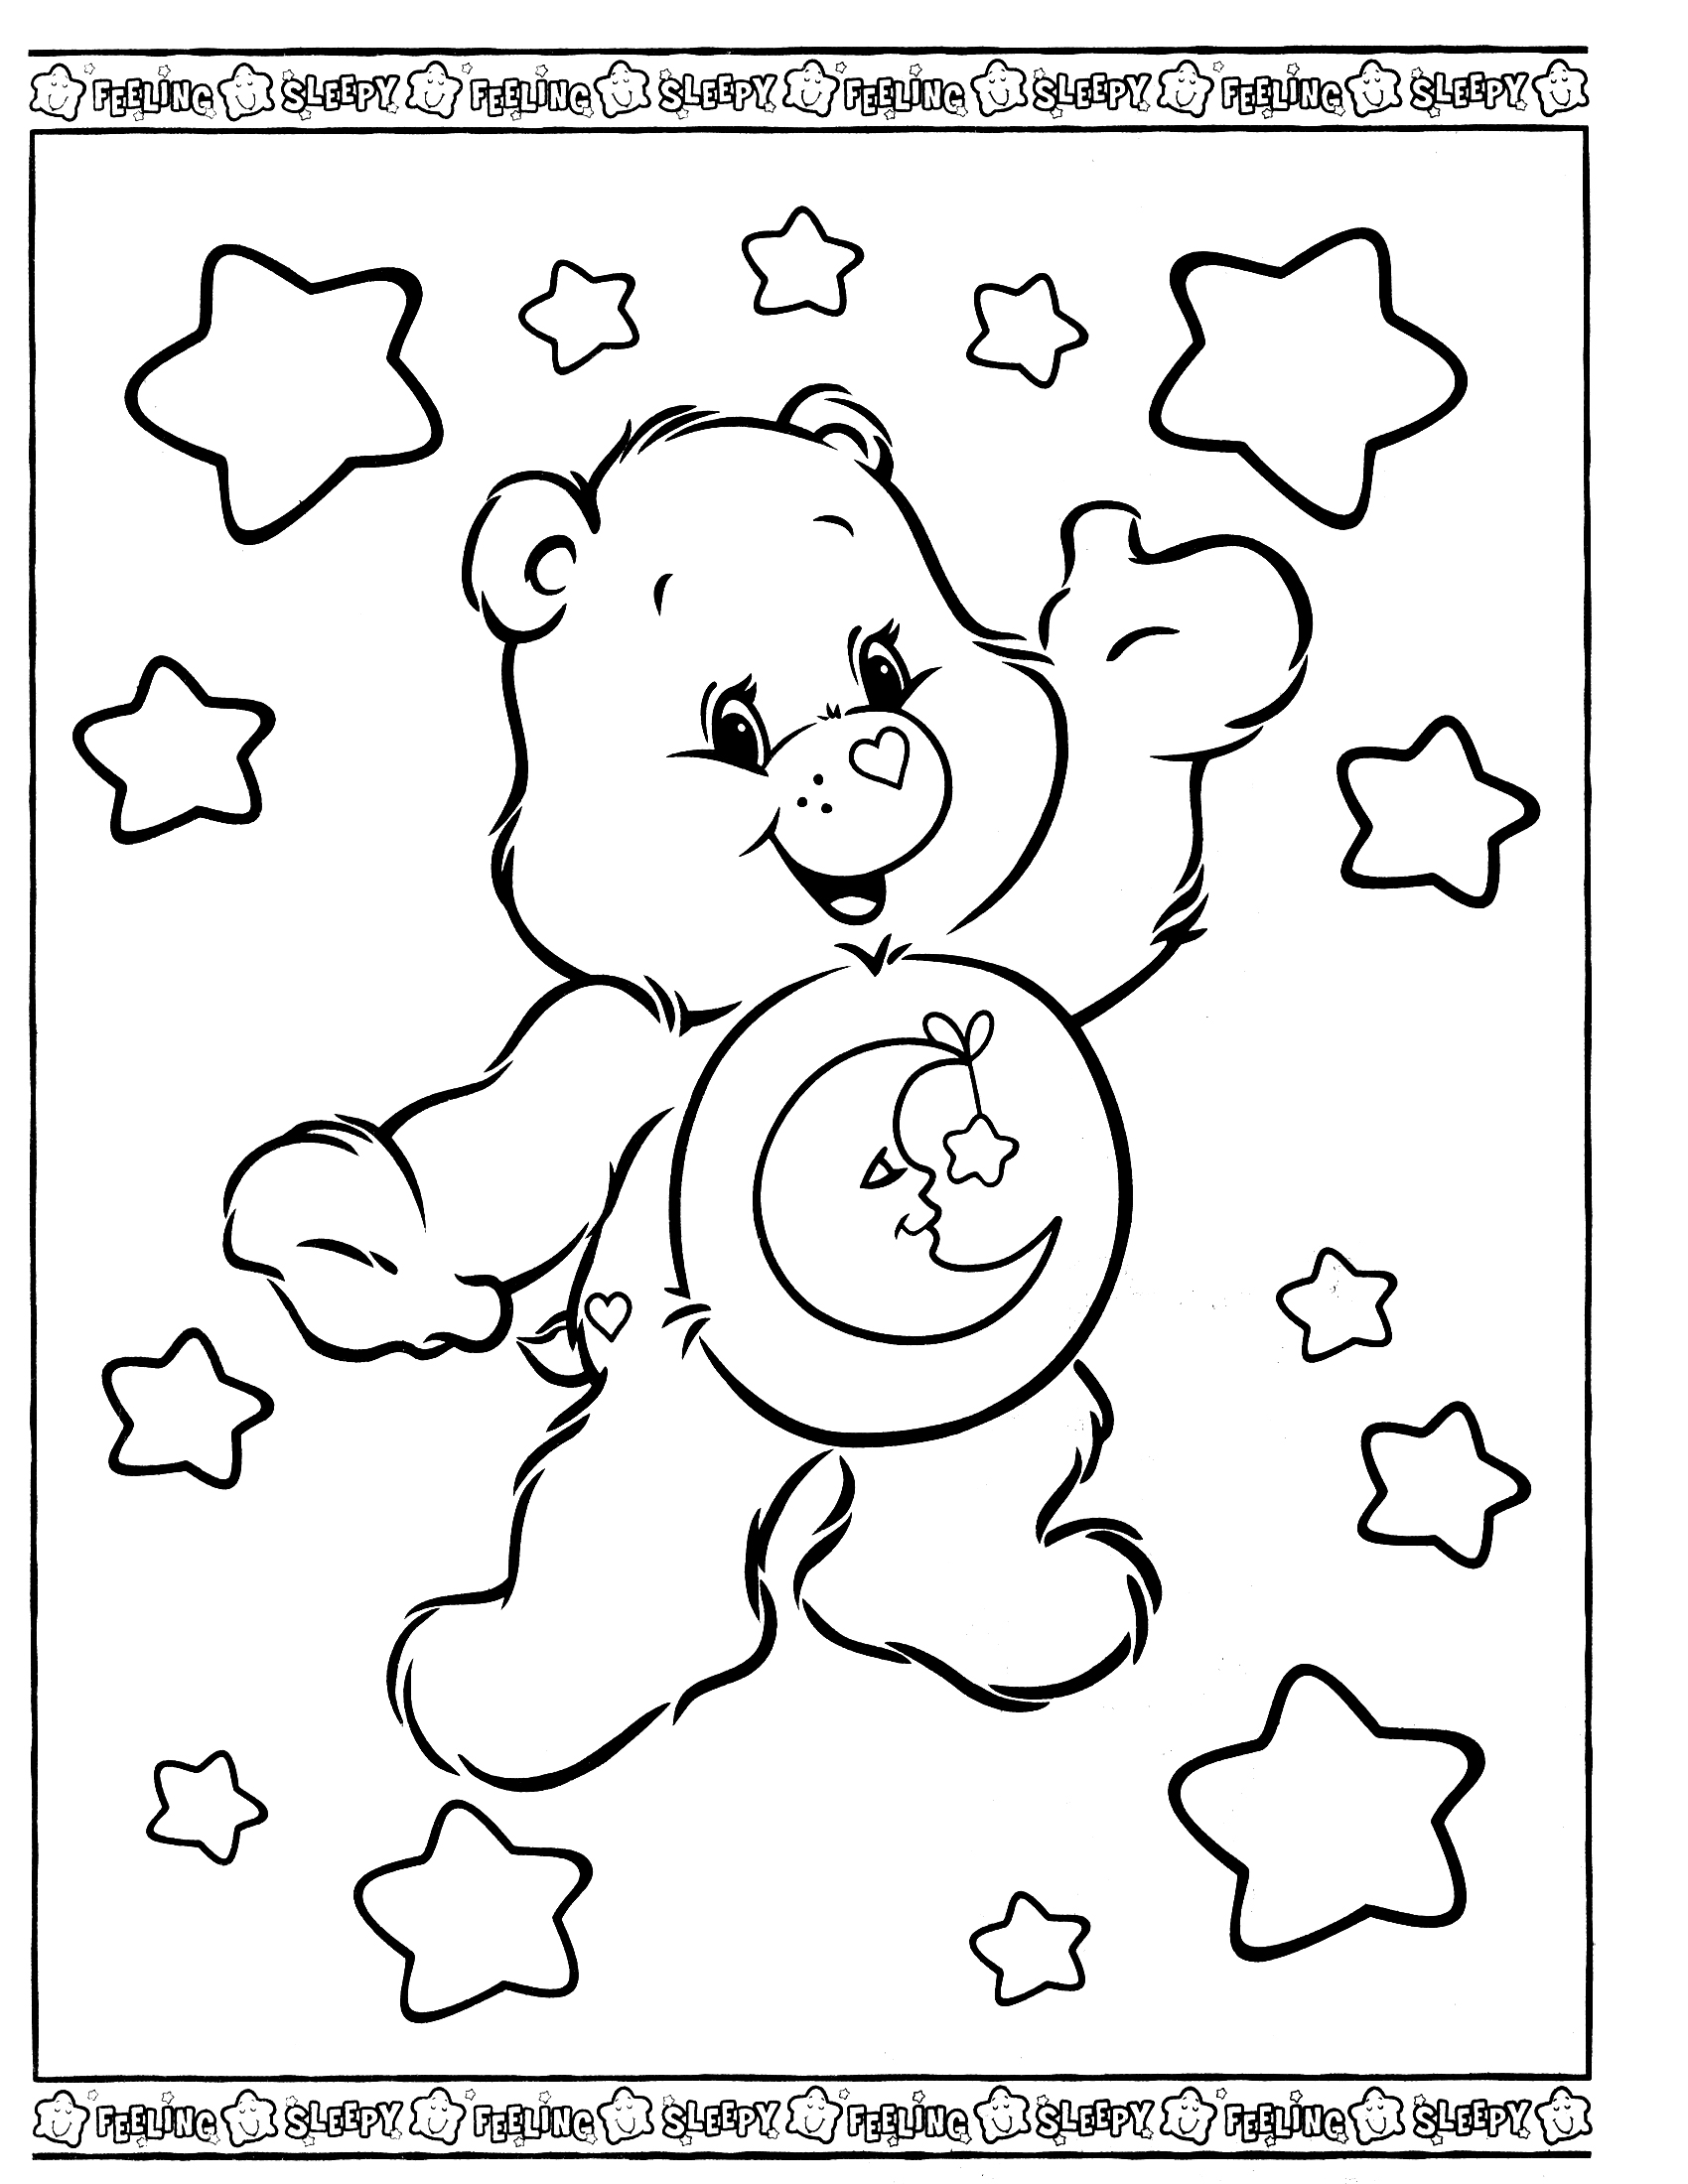 carebear coloring pages - photo#29